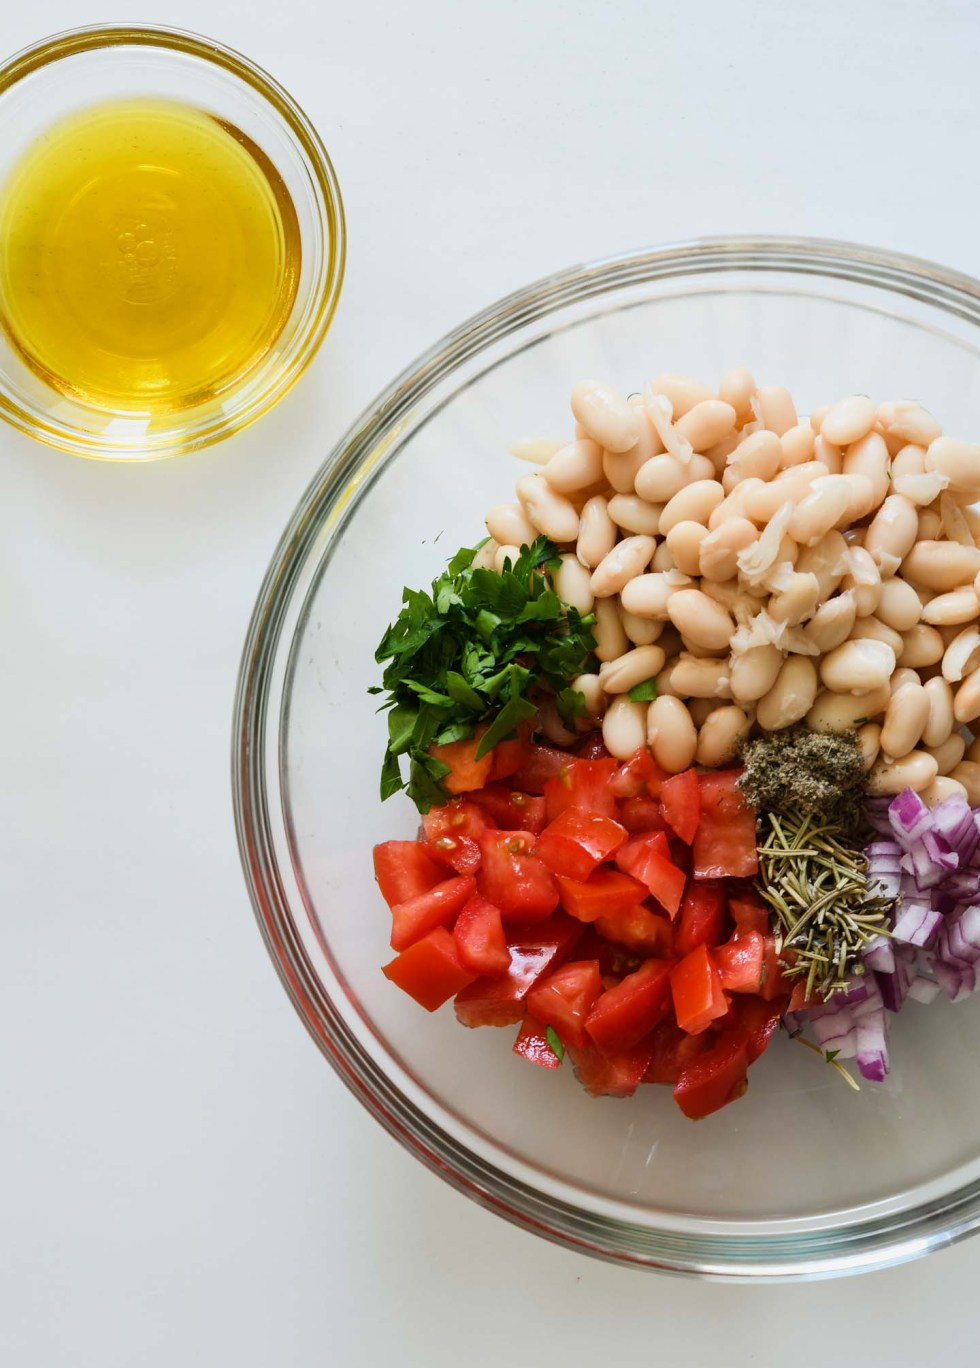 White beans, chopped tomato, red onion and spices in a clear glass bowl